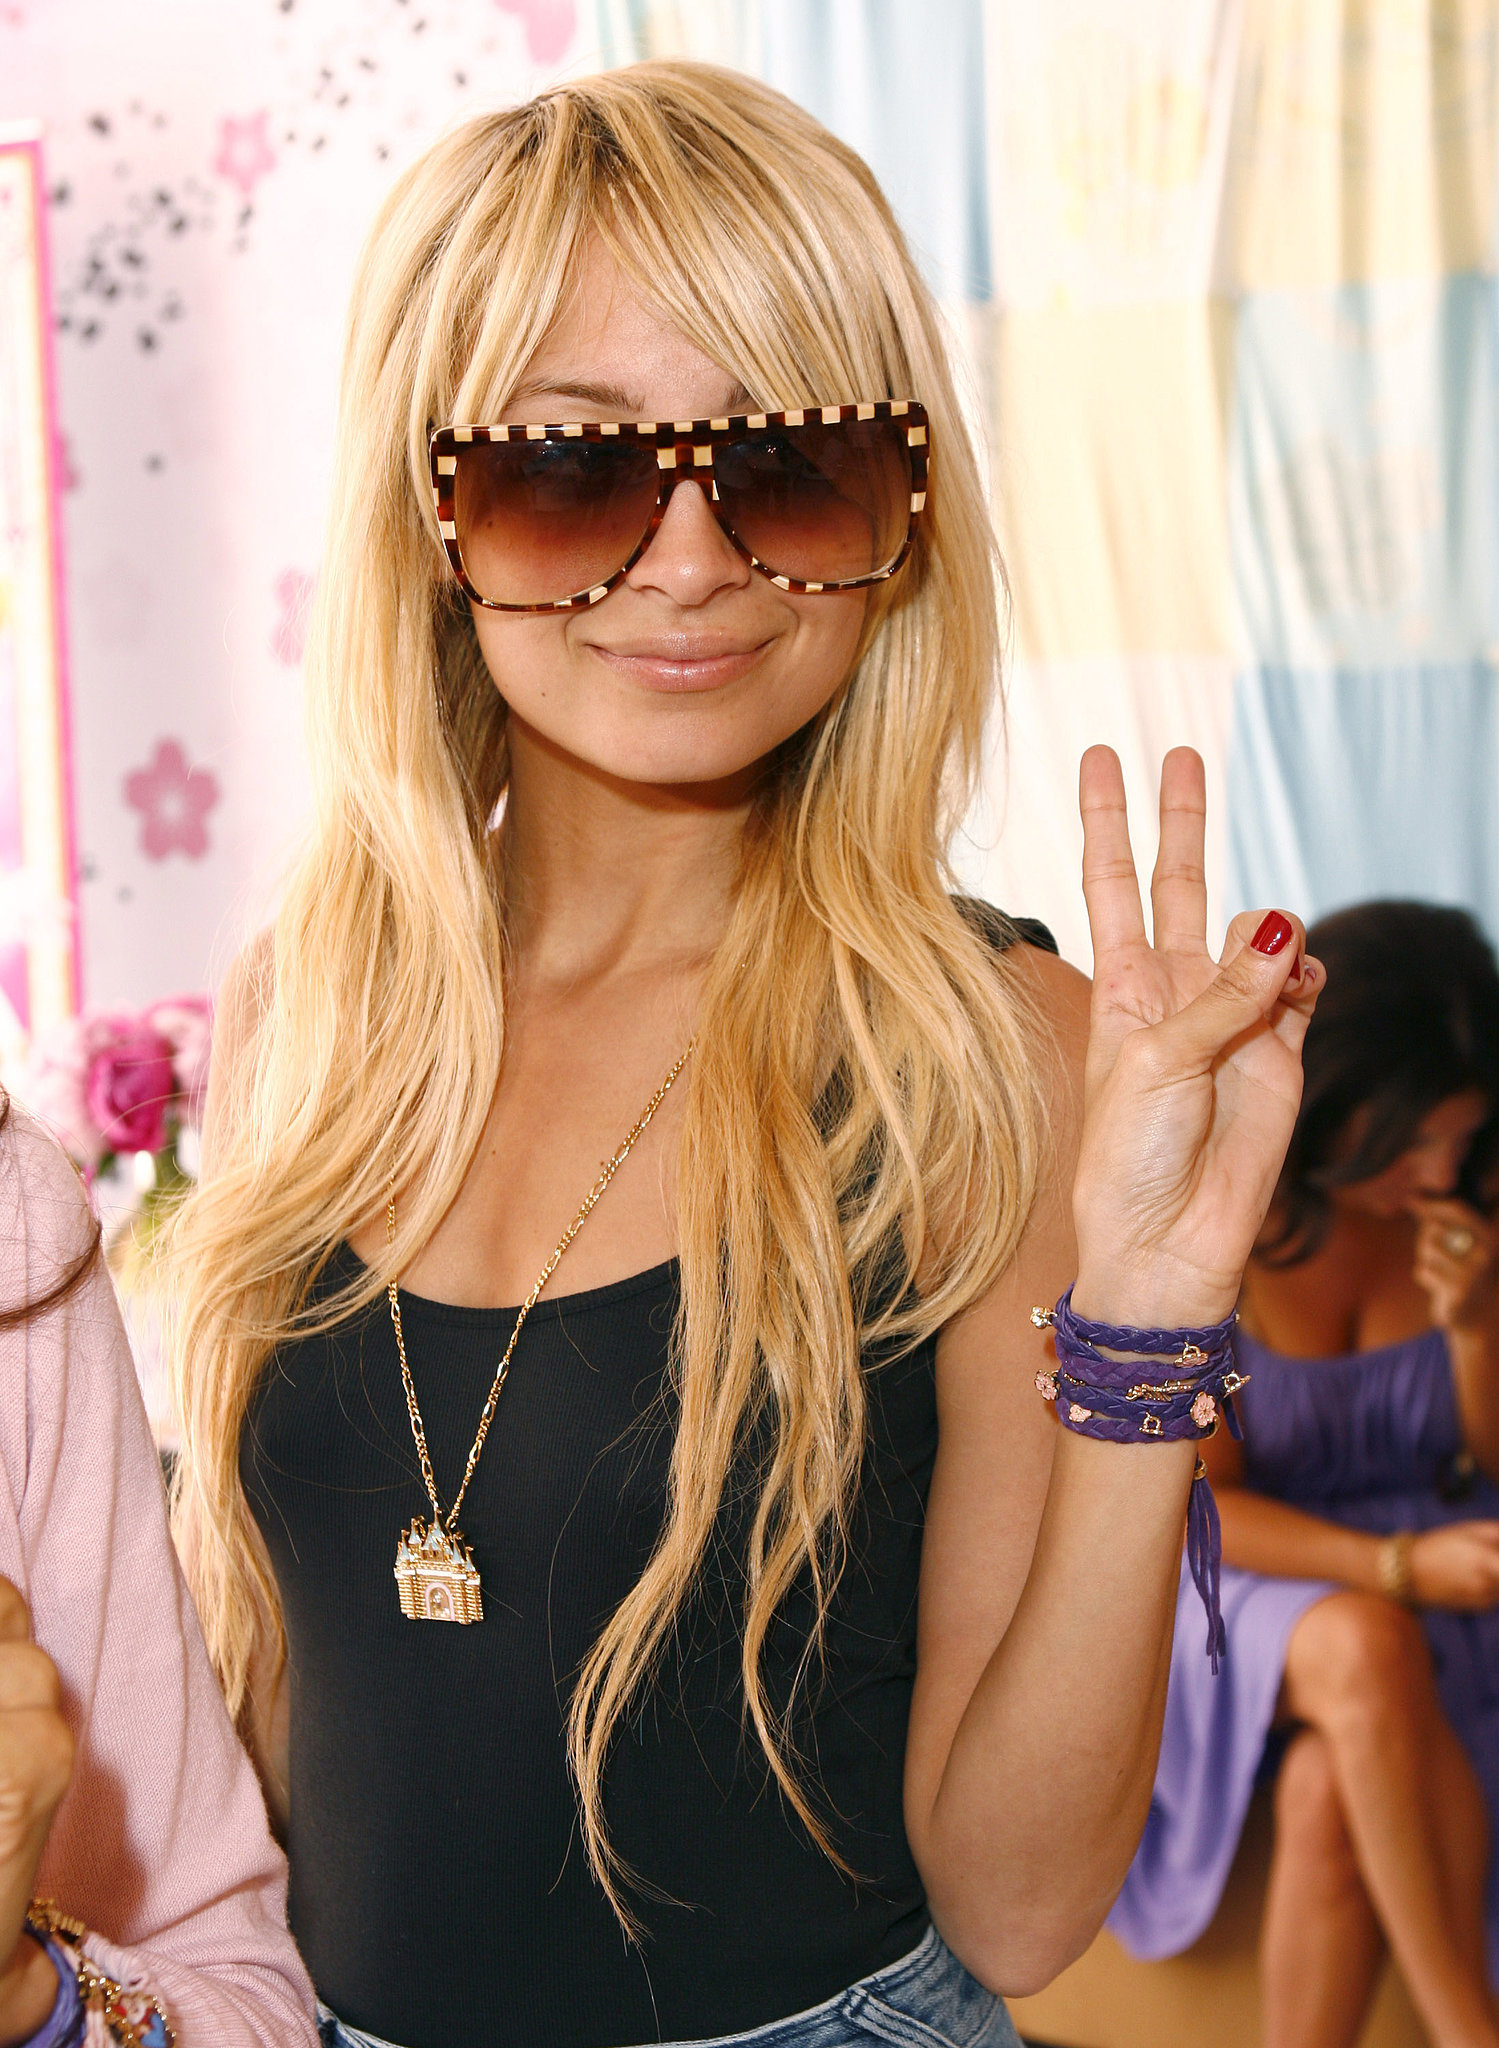 She flashed a peace sign at a Disney Couture party hosted by her longtime friend Kidada Jones in May 2007.